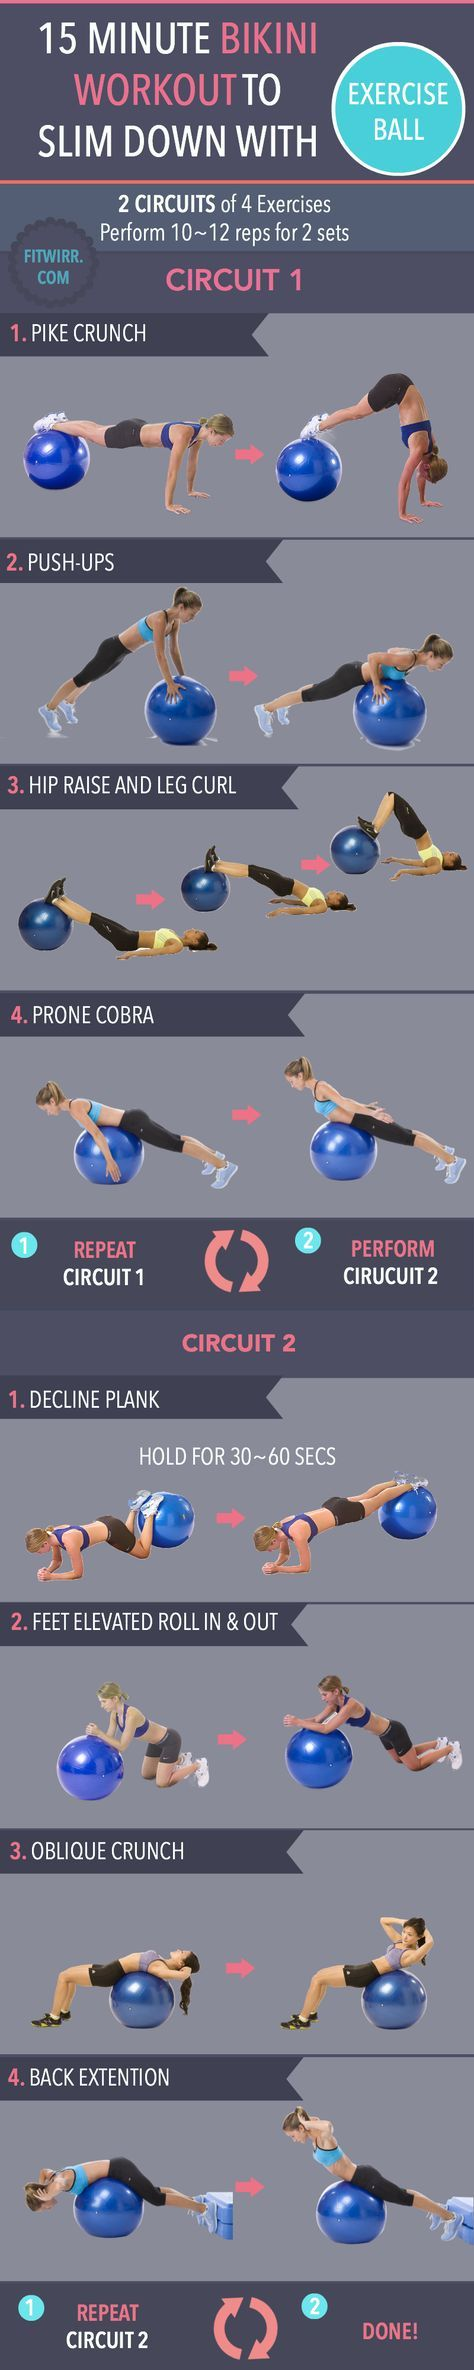 15 minute exercise ball workout